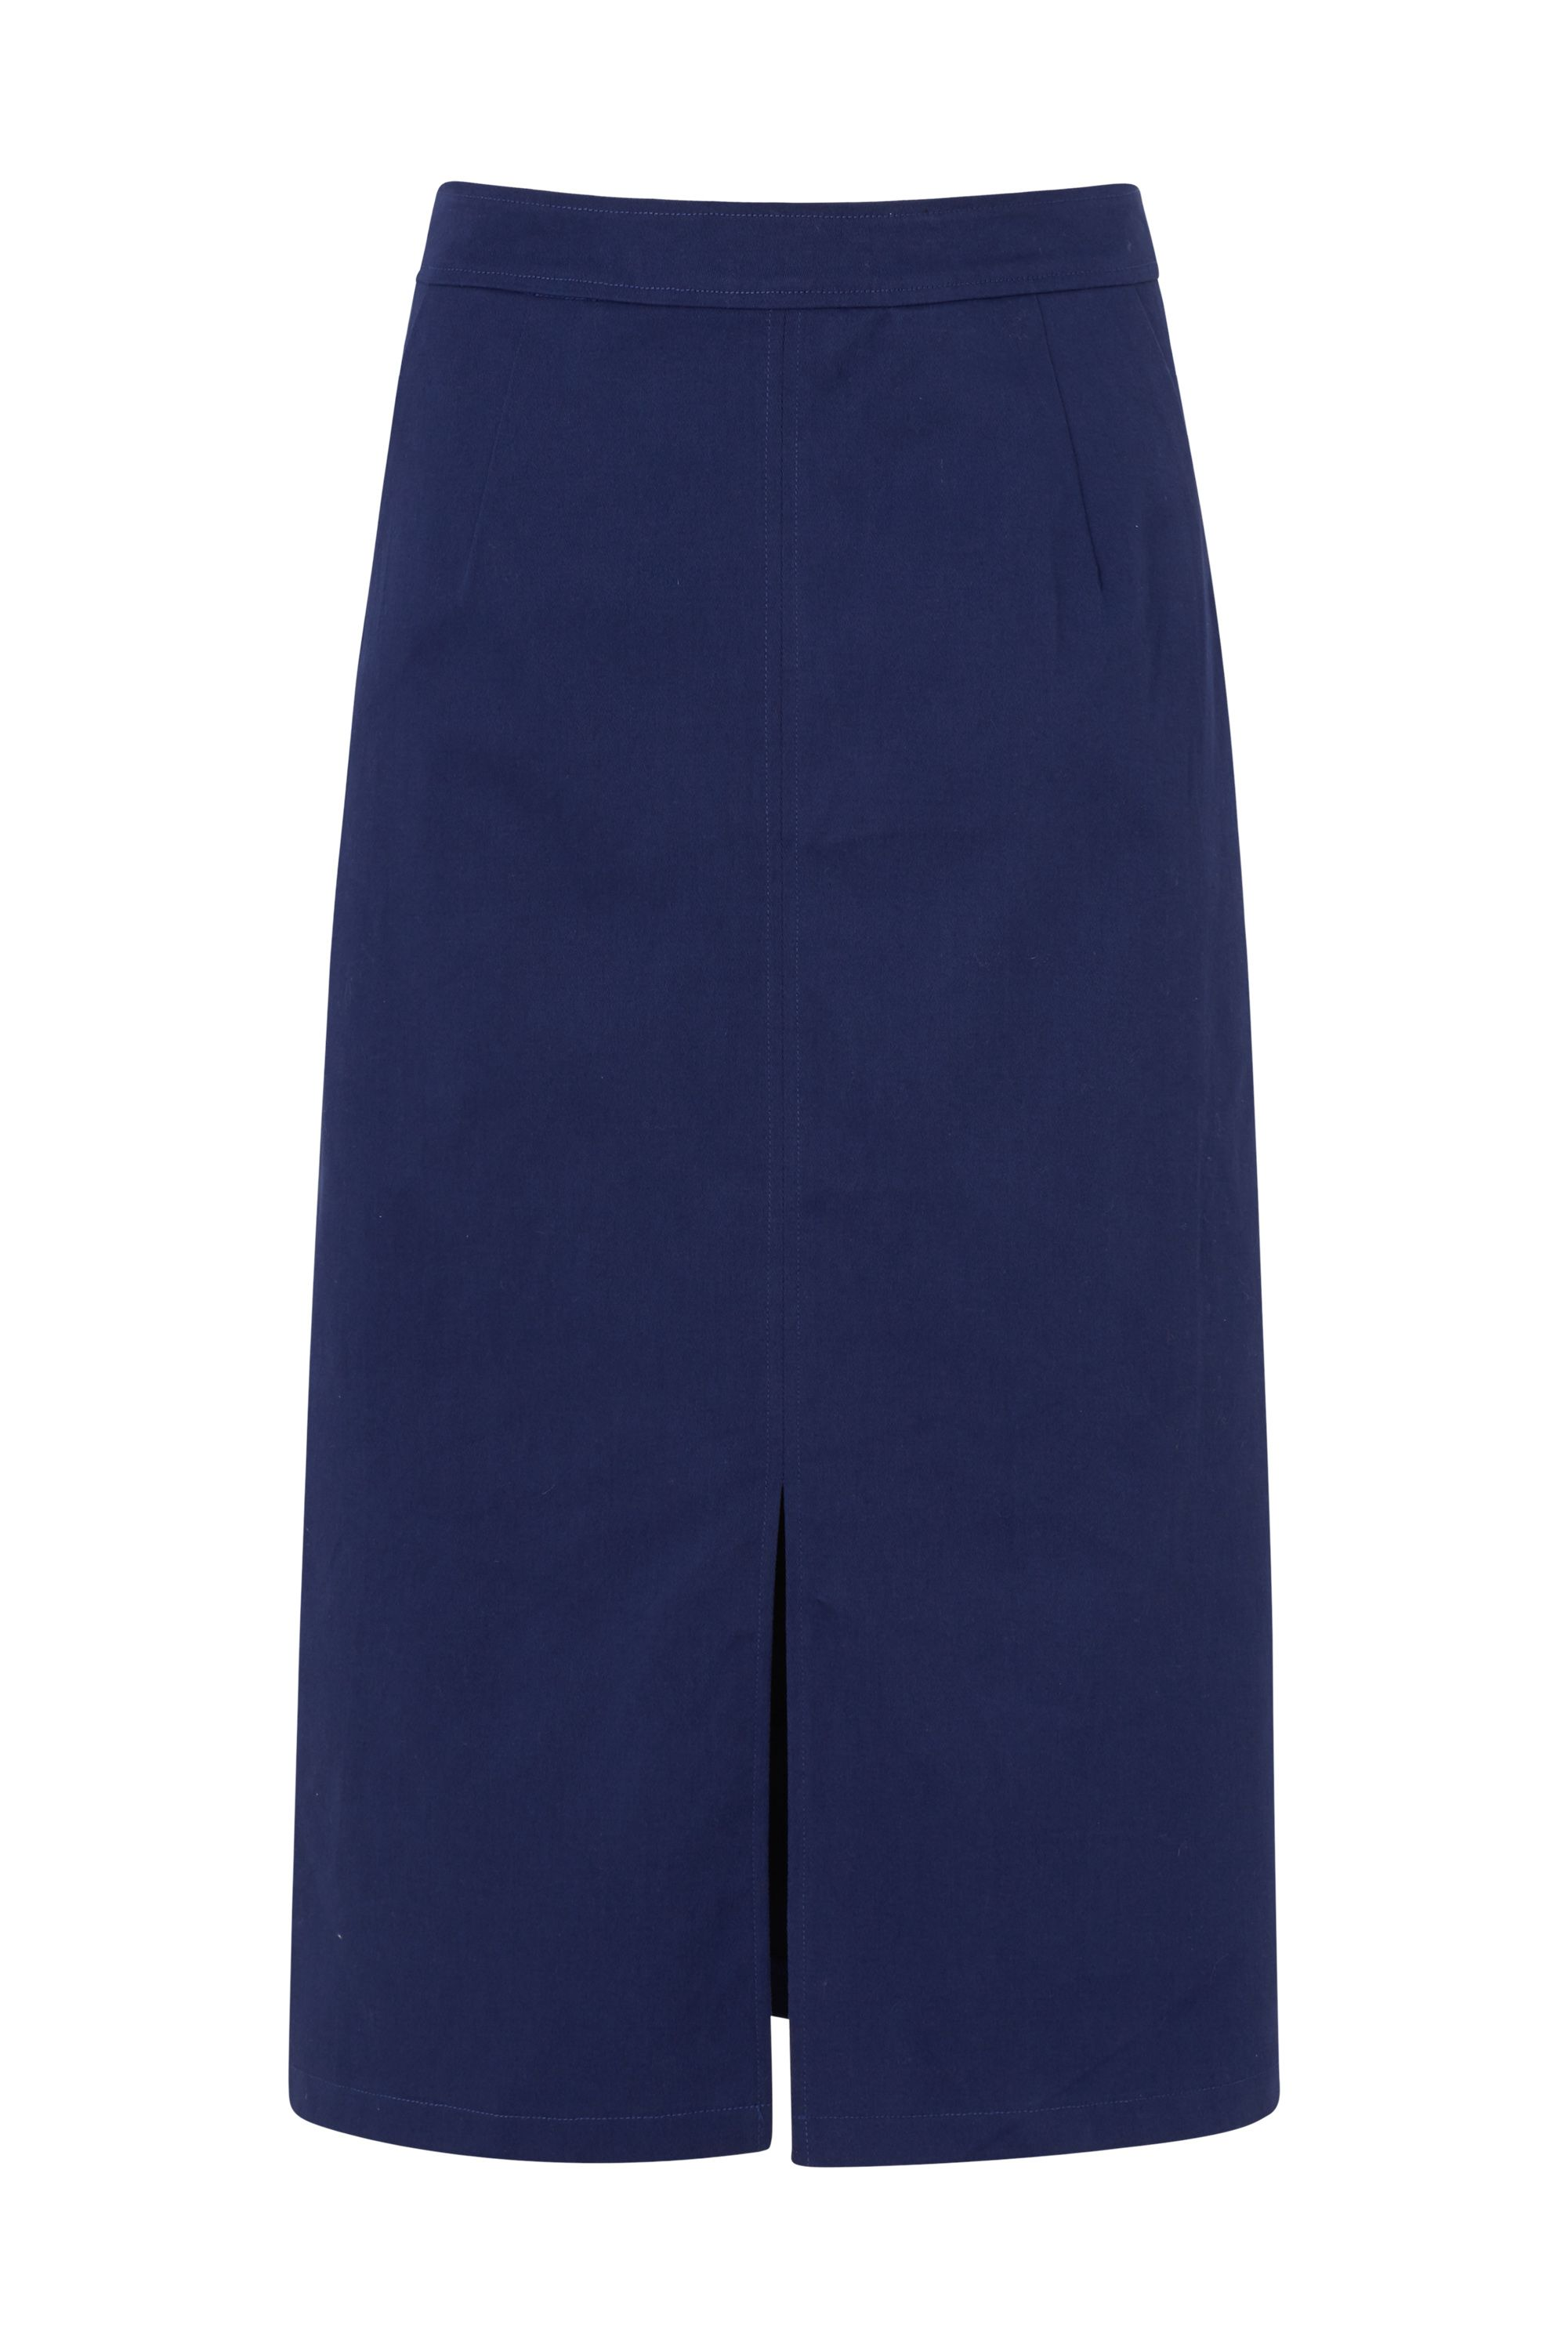 Sugarhill Boutique Bianca Midi Skirt, Blue